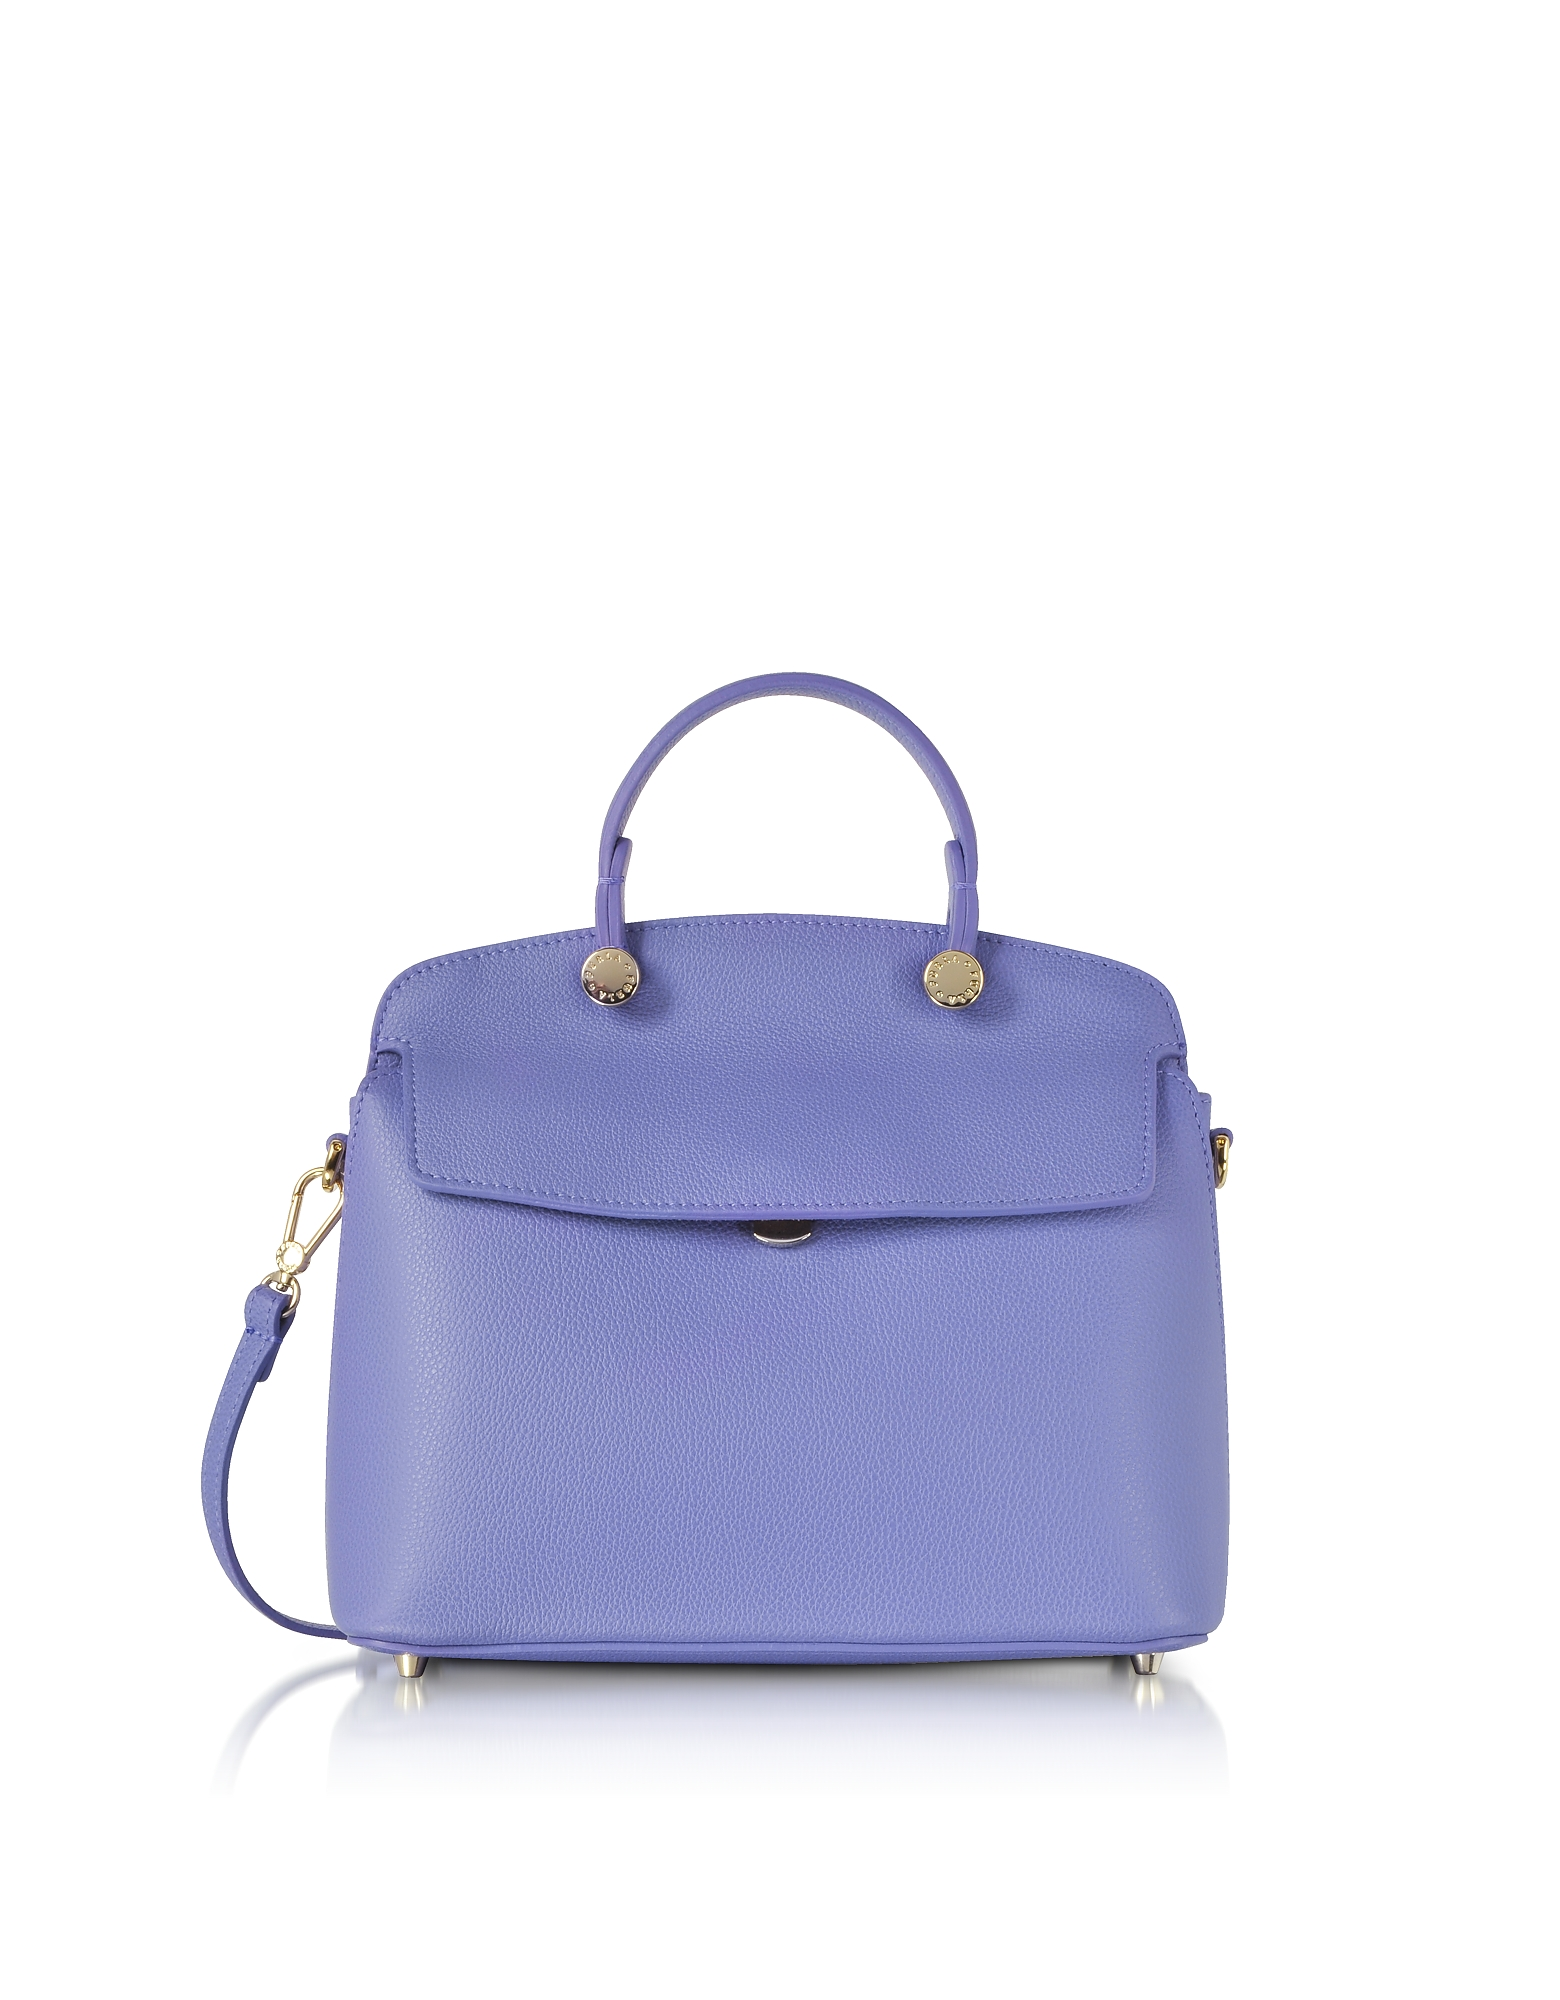 Furla Handbags, My Piper Small Top Handle Satchel Bag